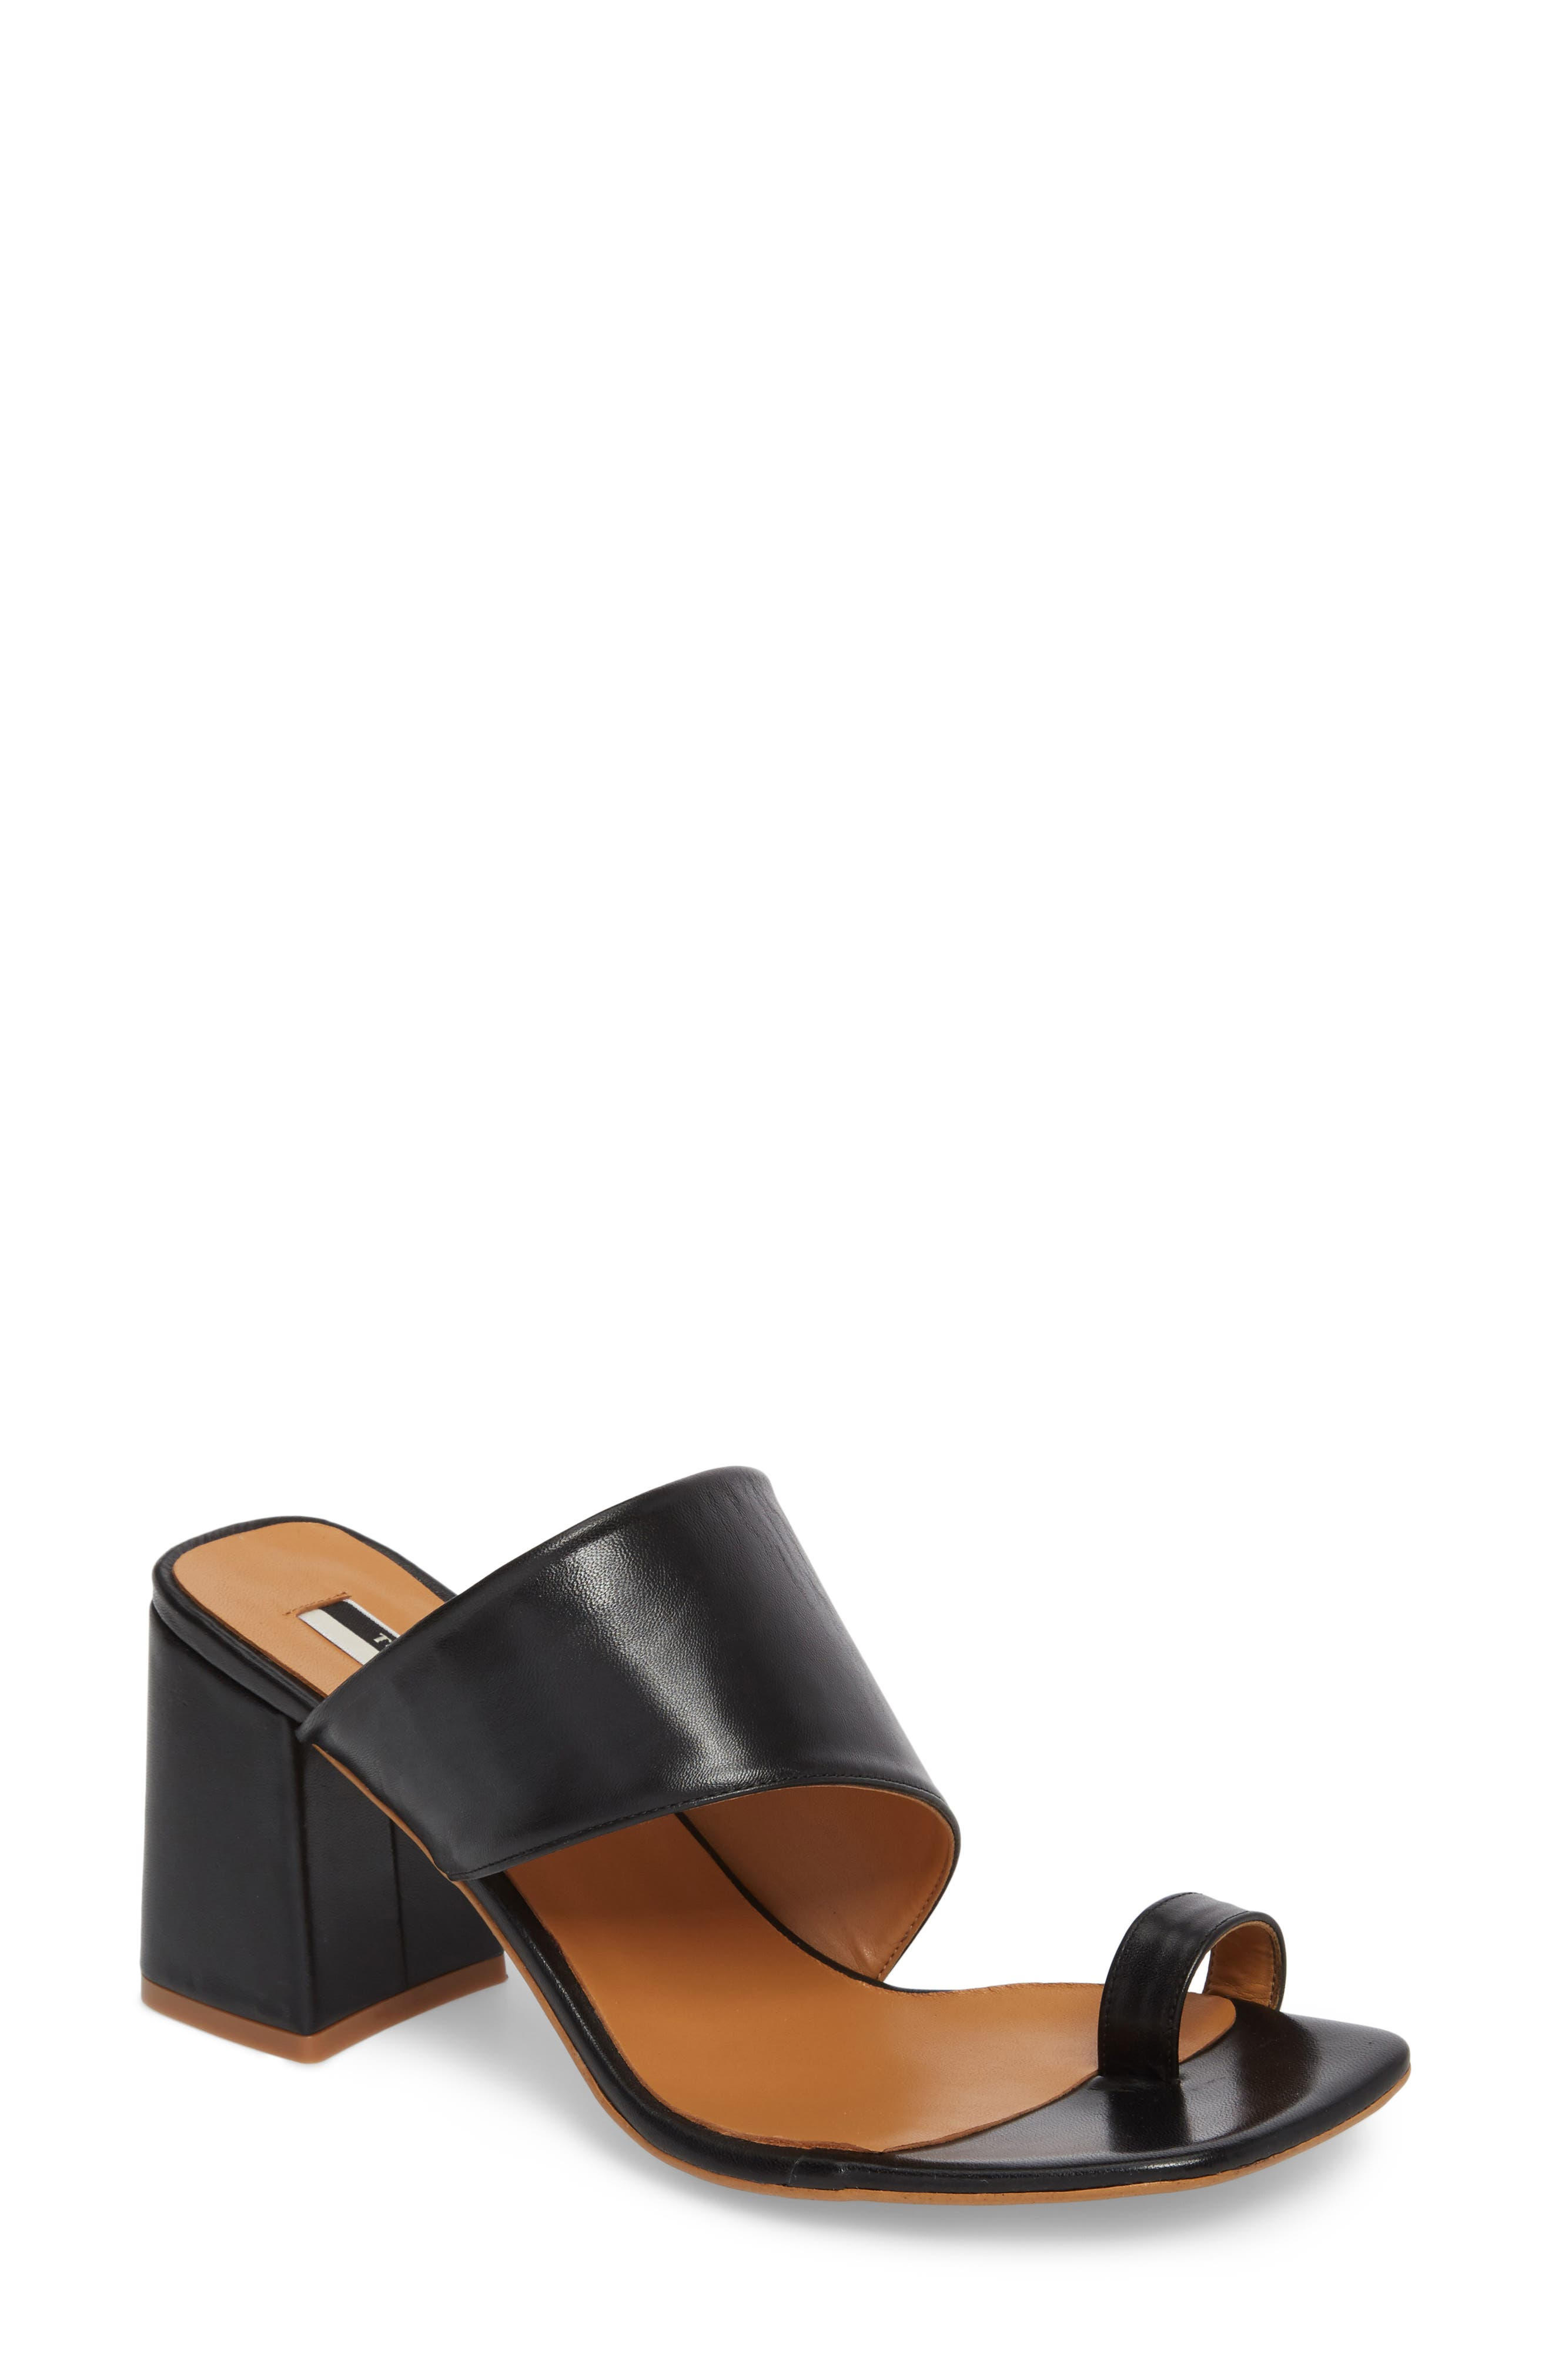 Alternate Image 1 Selected - Topshop Nimble Toe Loop Slide Sandal (Women)